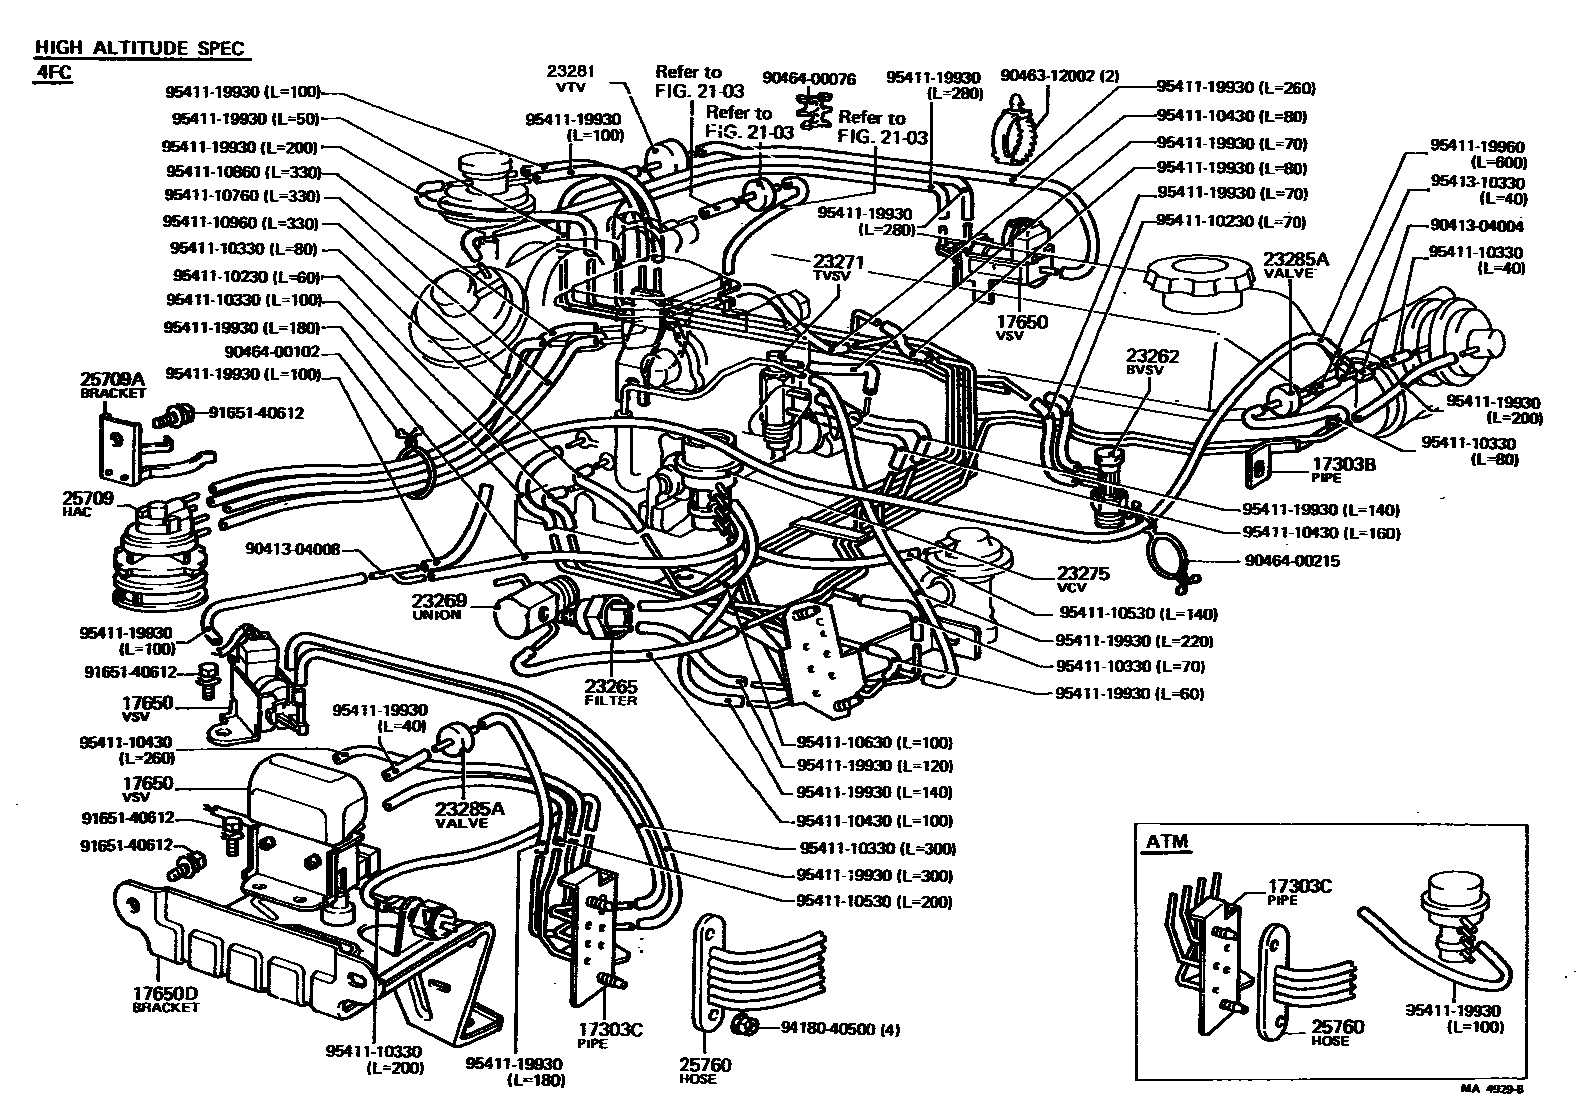 hight resolution of fuse box 94 toyota pickup wiring diagram diagram leryn franco 2000 dodge durango transmission diagram 2005